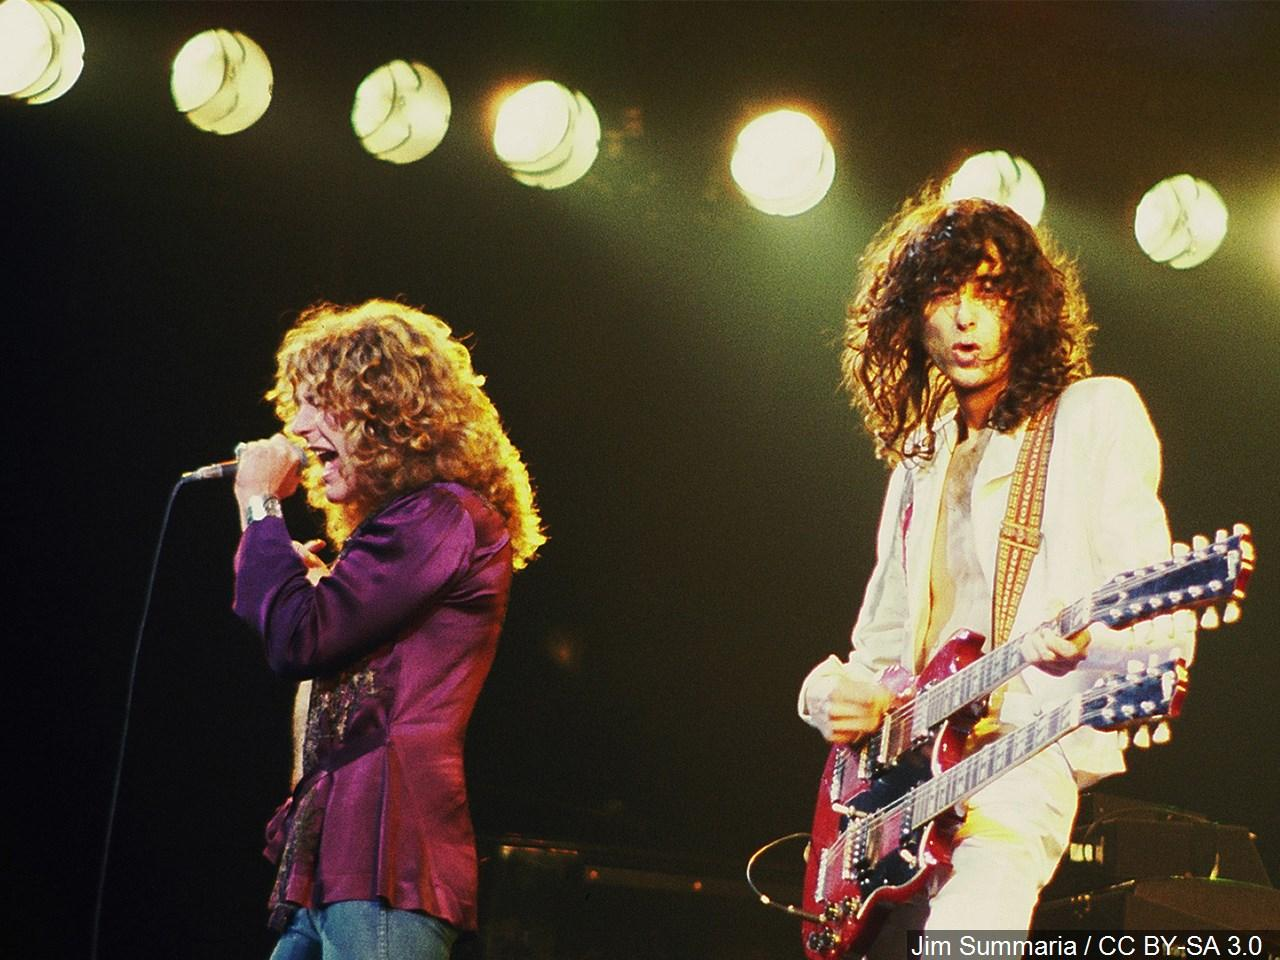 Robert Plant and Jimmy Page from Led Zeppelin, 1977. (Photo credit:{ }Jim Summaria / CC BY-SA 3.0 via MGN online)